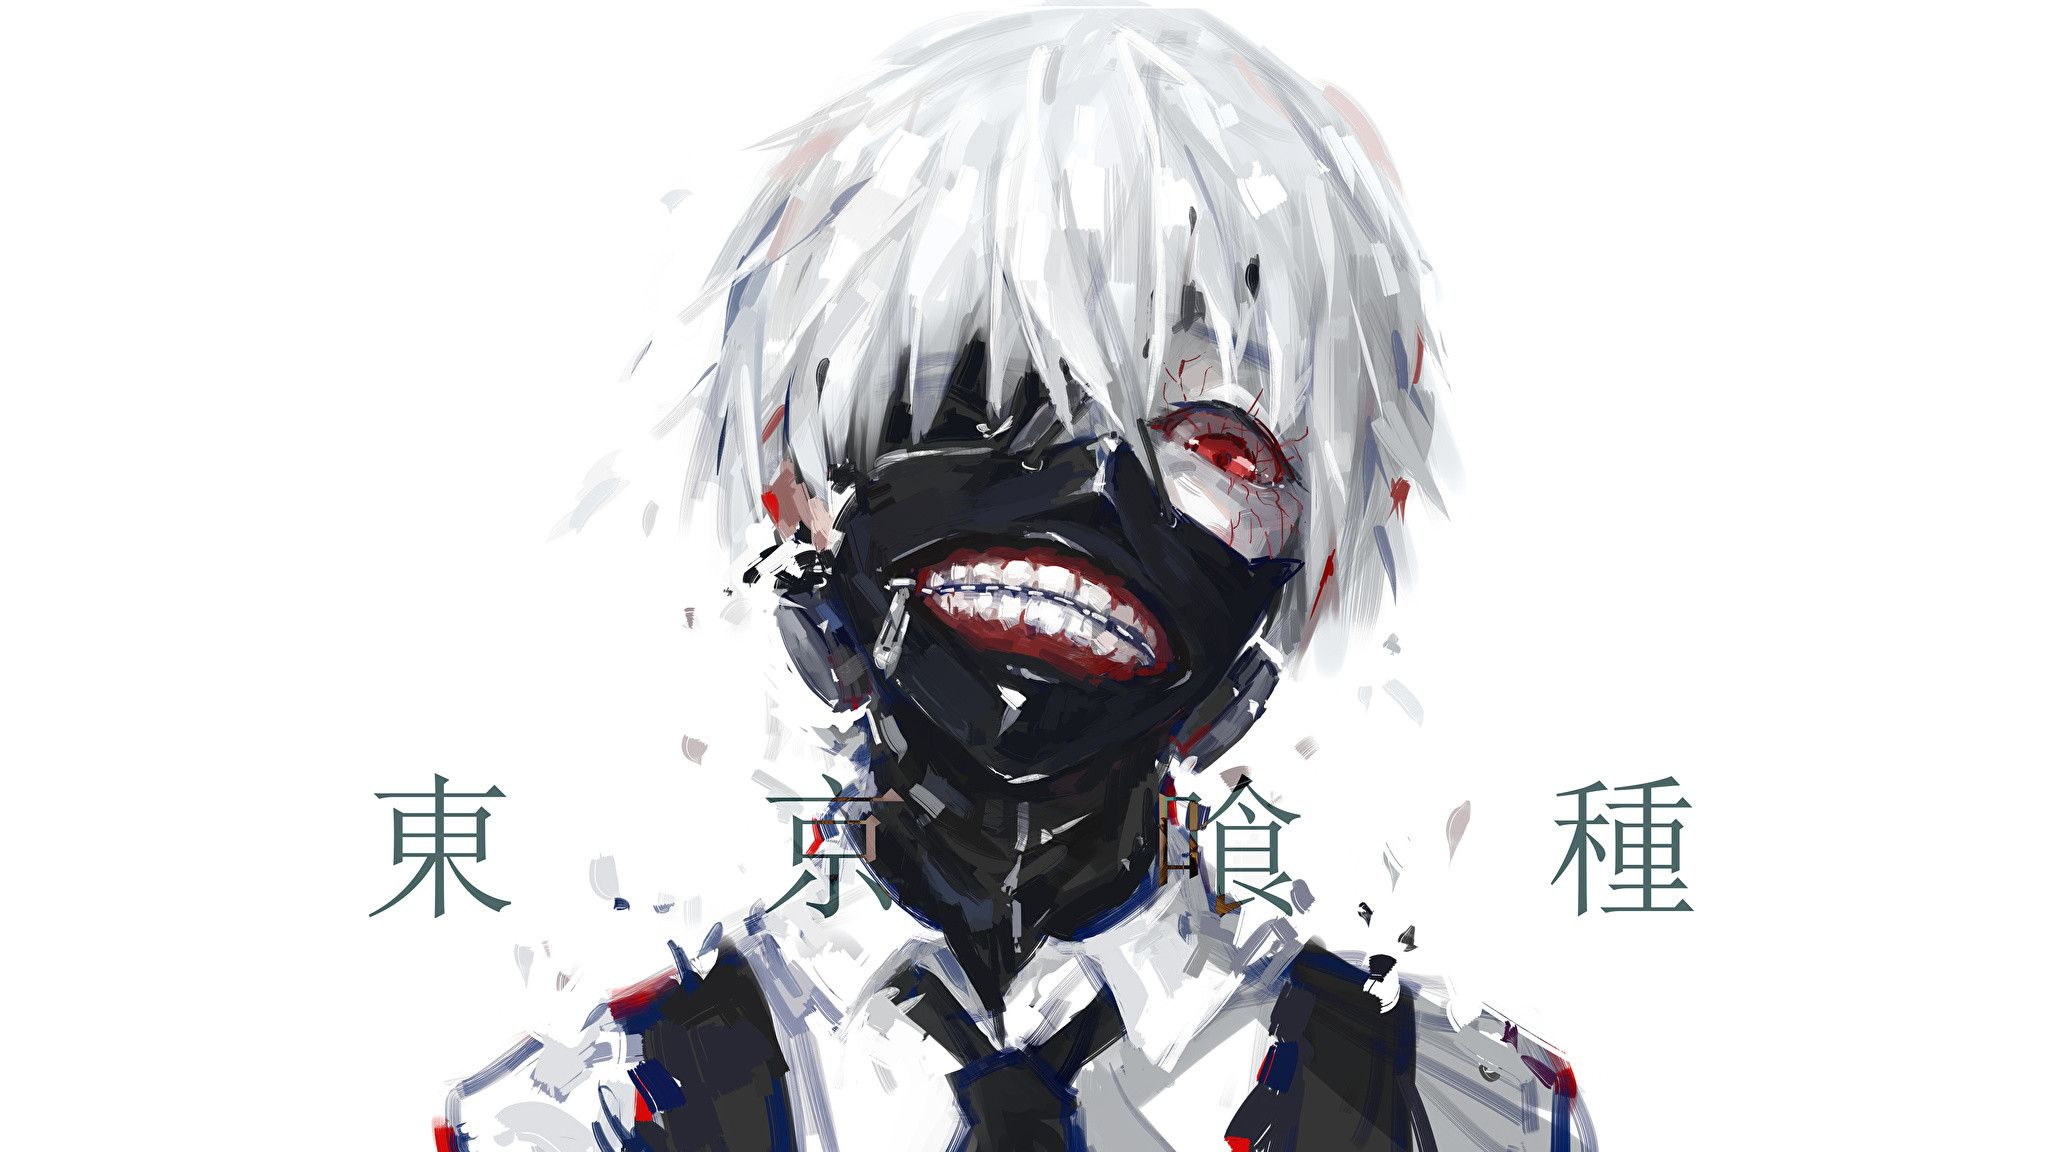 2048x1152 Pictures Tokyo Ghoul Young Man Anime Masks